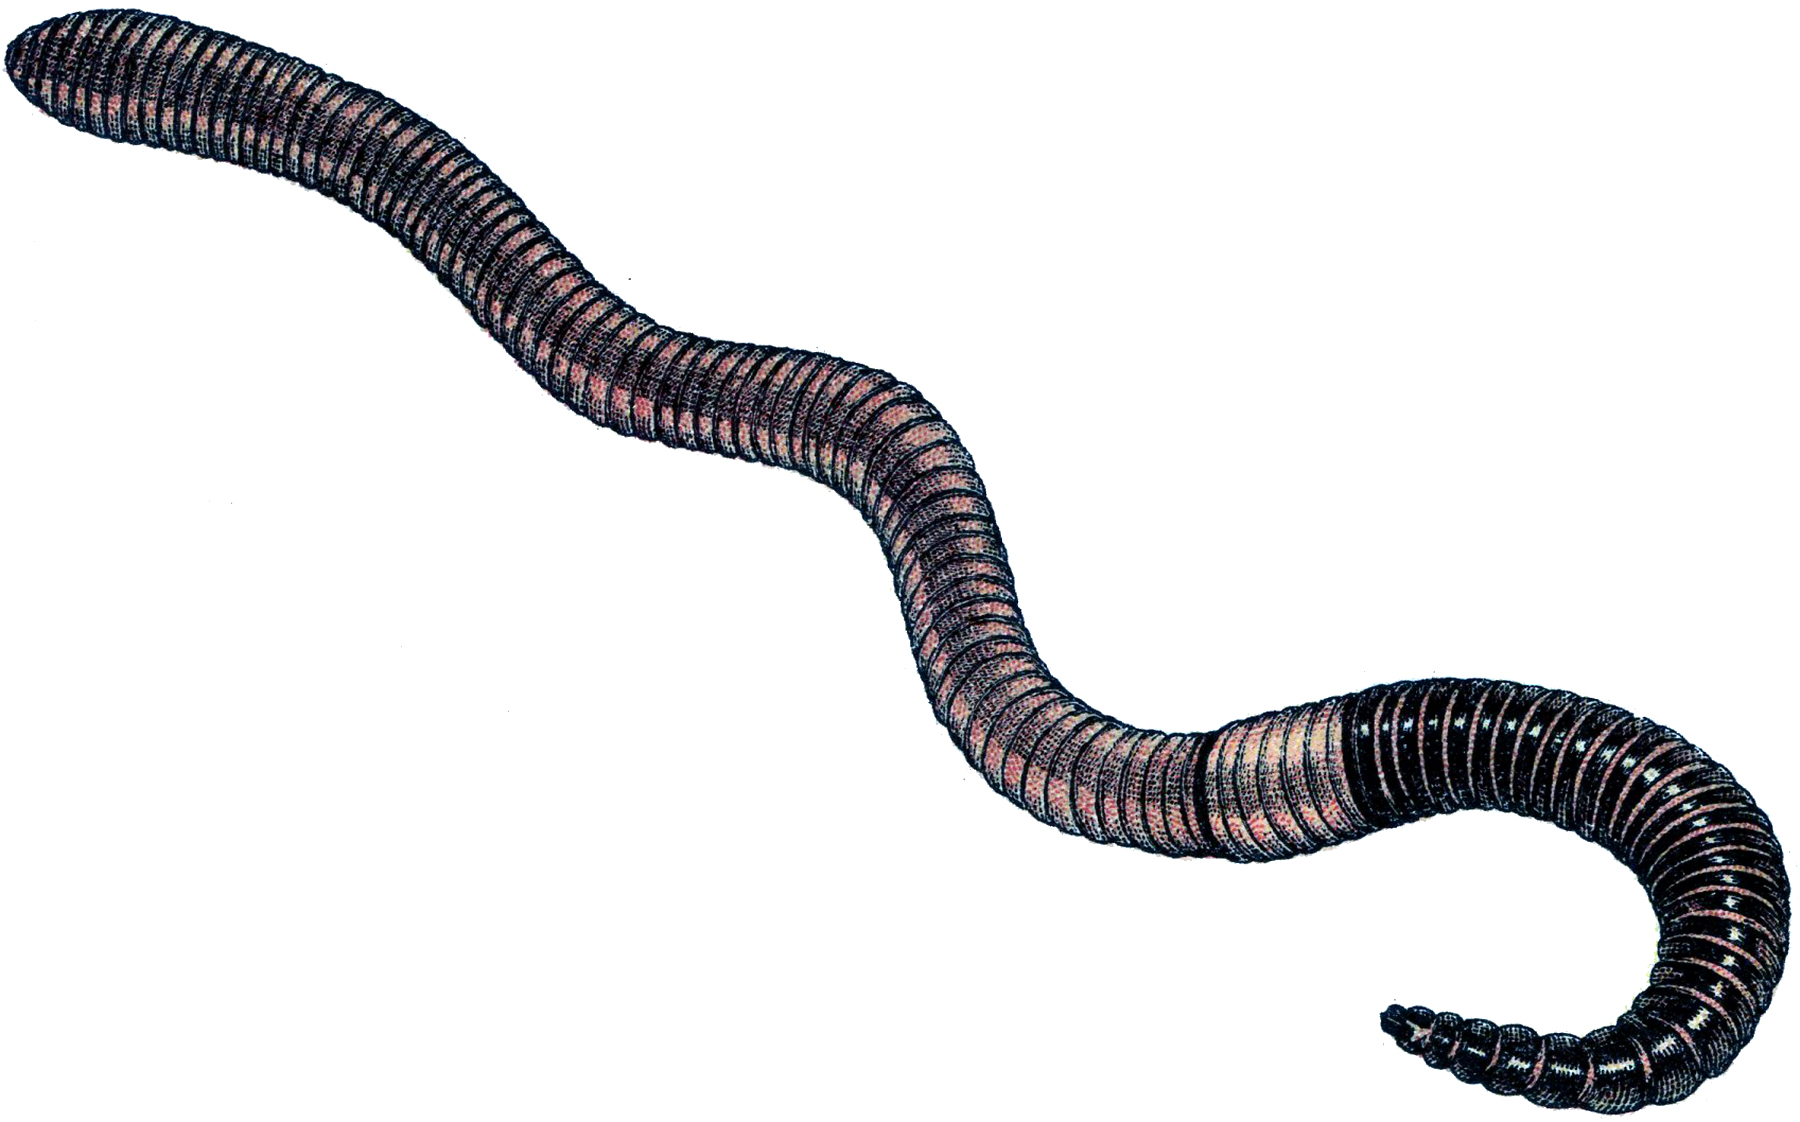 Vintage Earth Worm Image - The Graphics Fairy